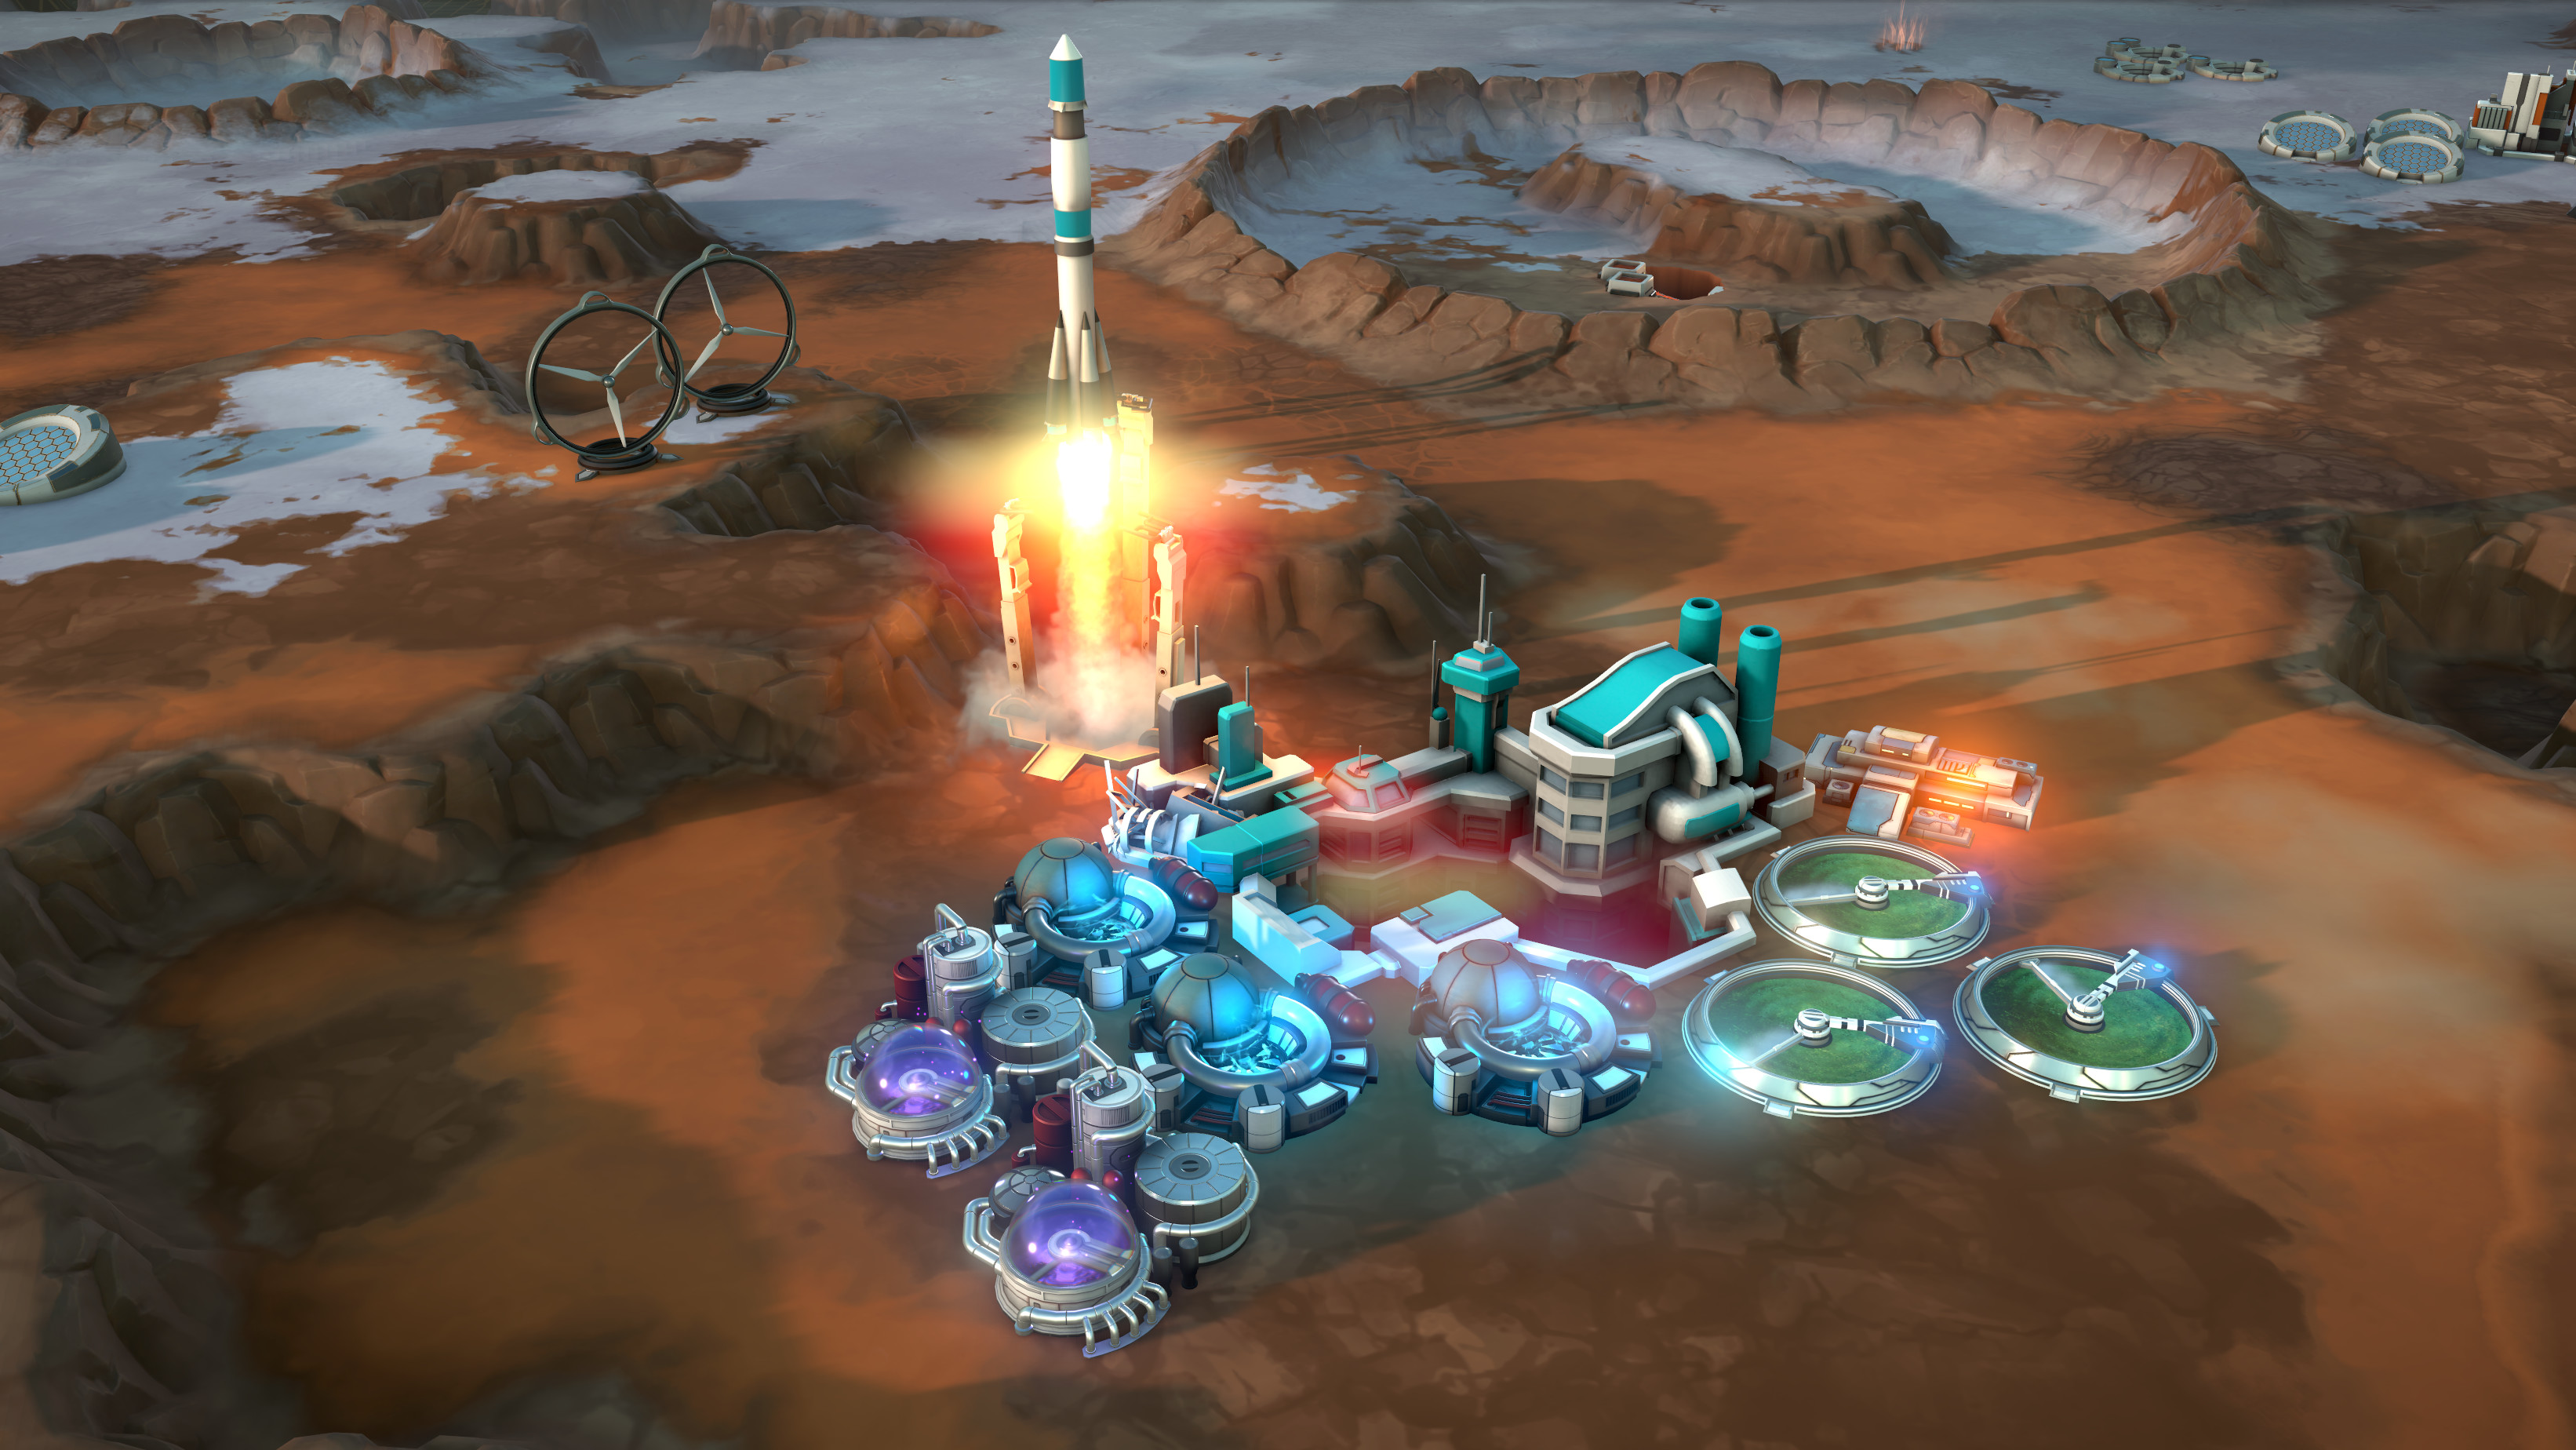 Offworld Trading Company free on Steam this weekend